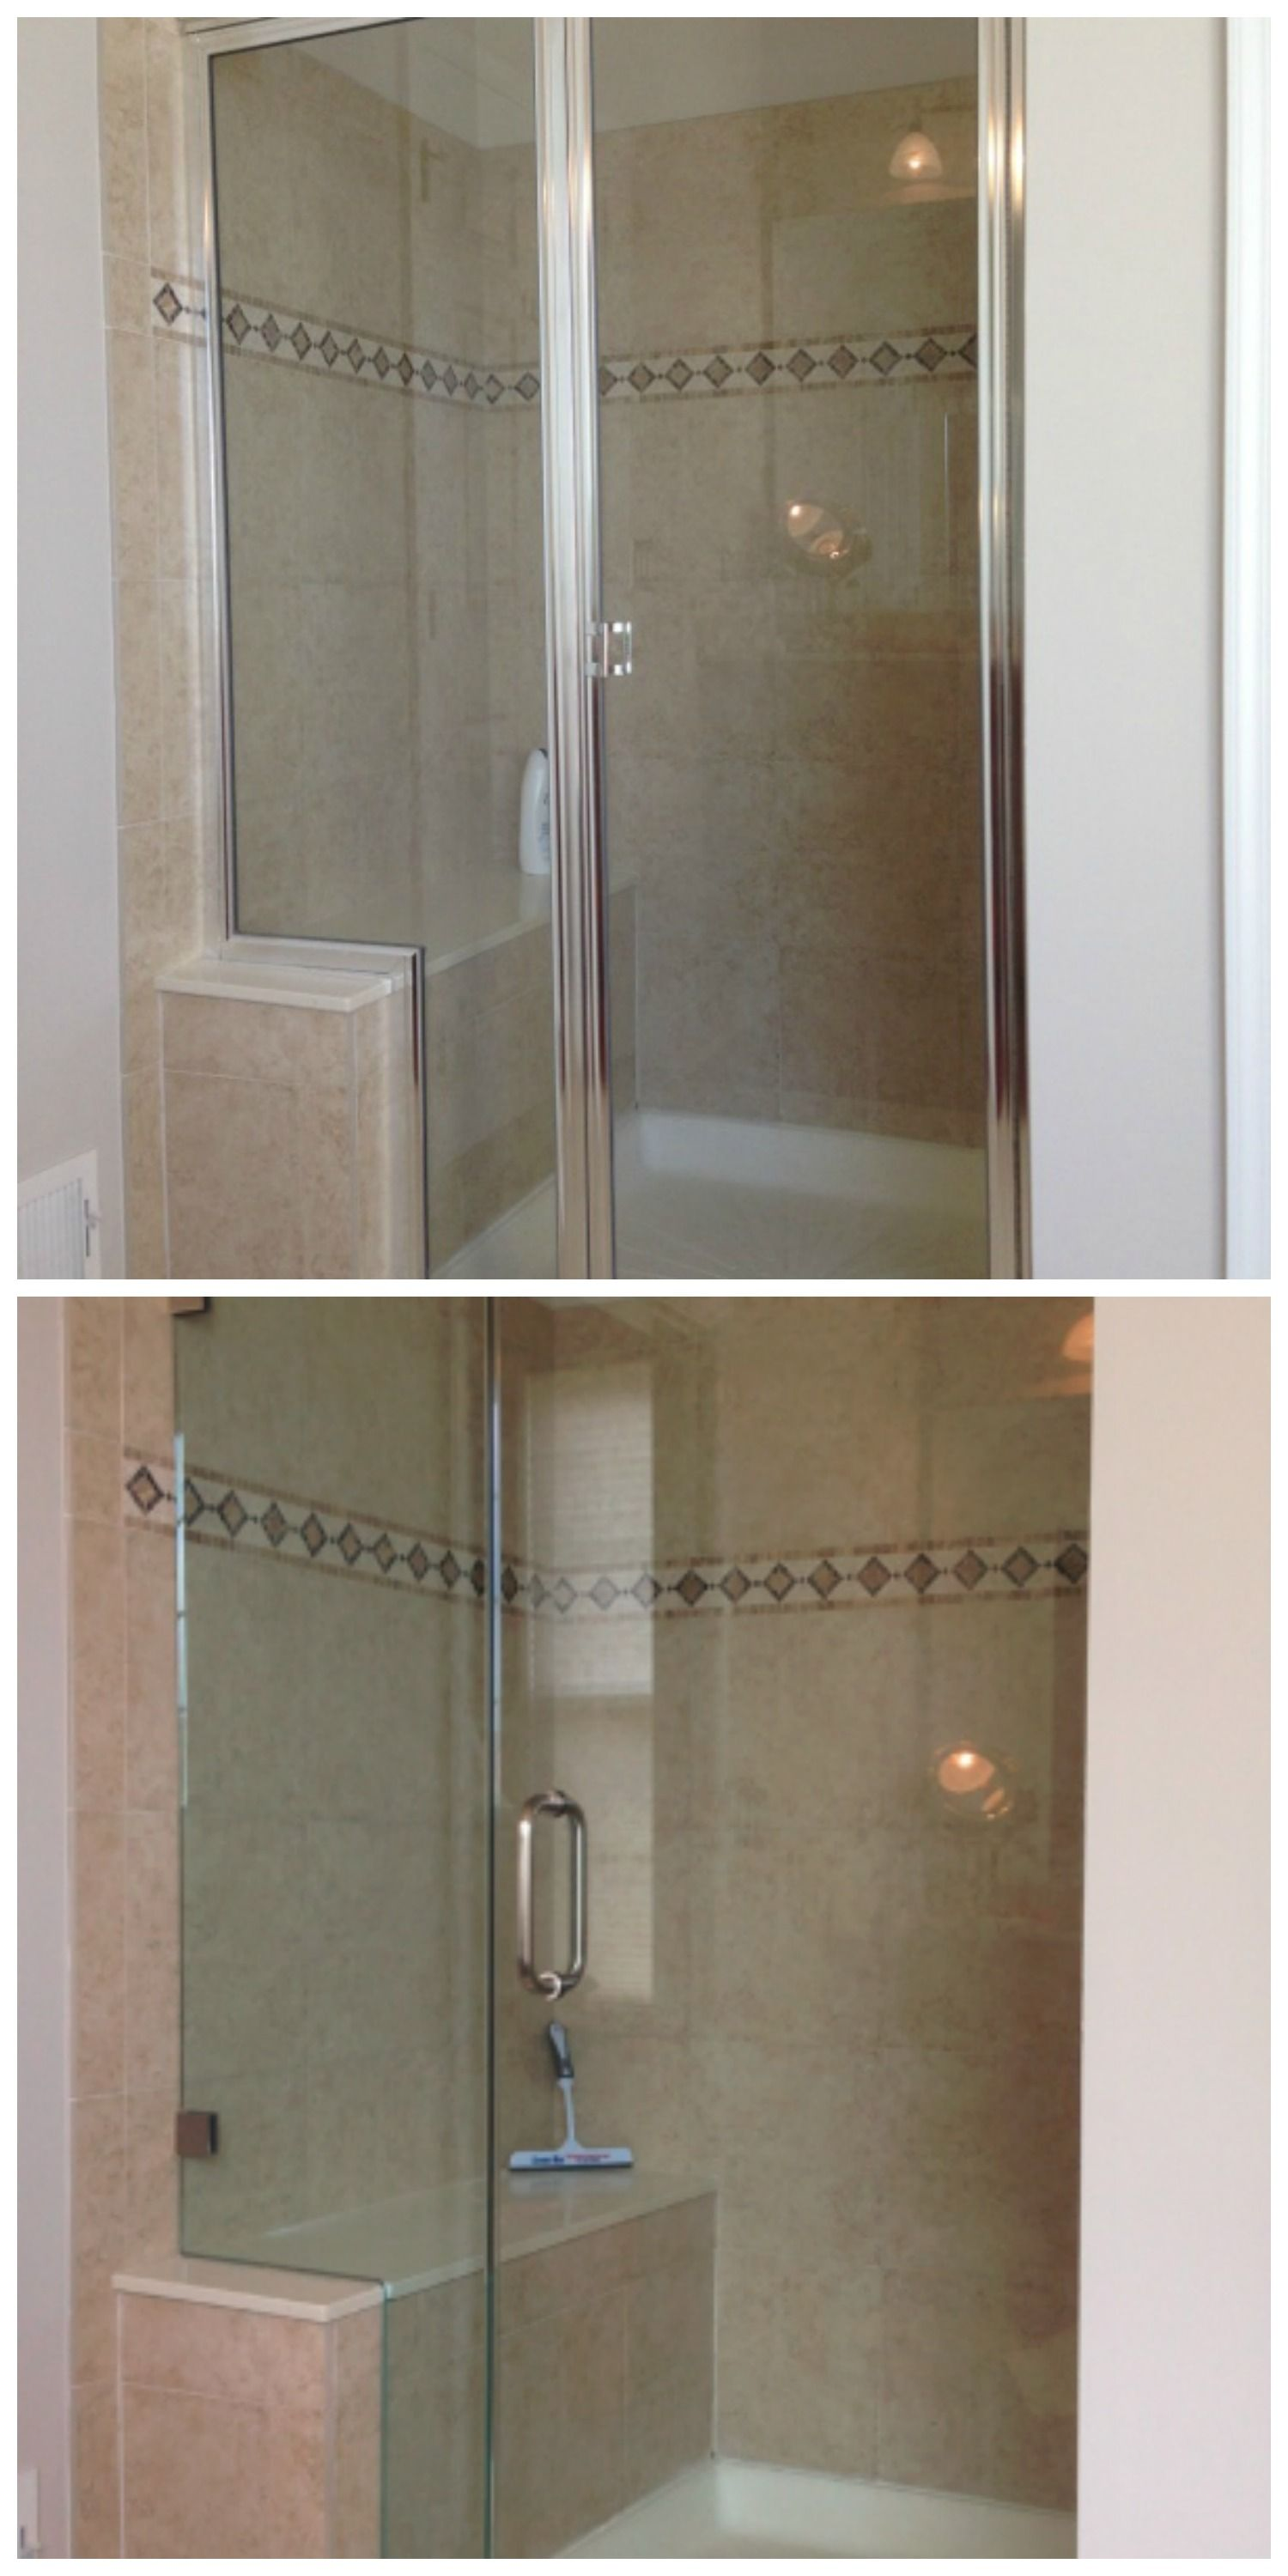 Before After An Uninspired Framed Shower Door Gets A Sleek Modern Makeover With Trul With Images Shower Doors Frameless Shower Doors Frameless Glass Shower Enclosure